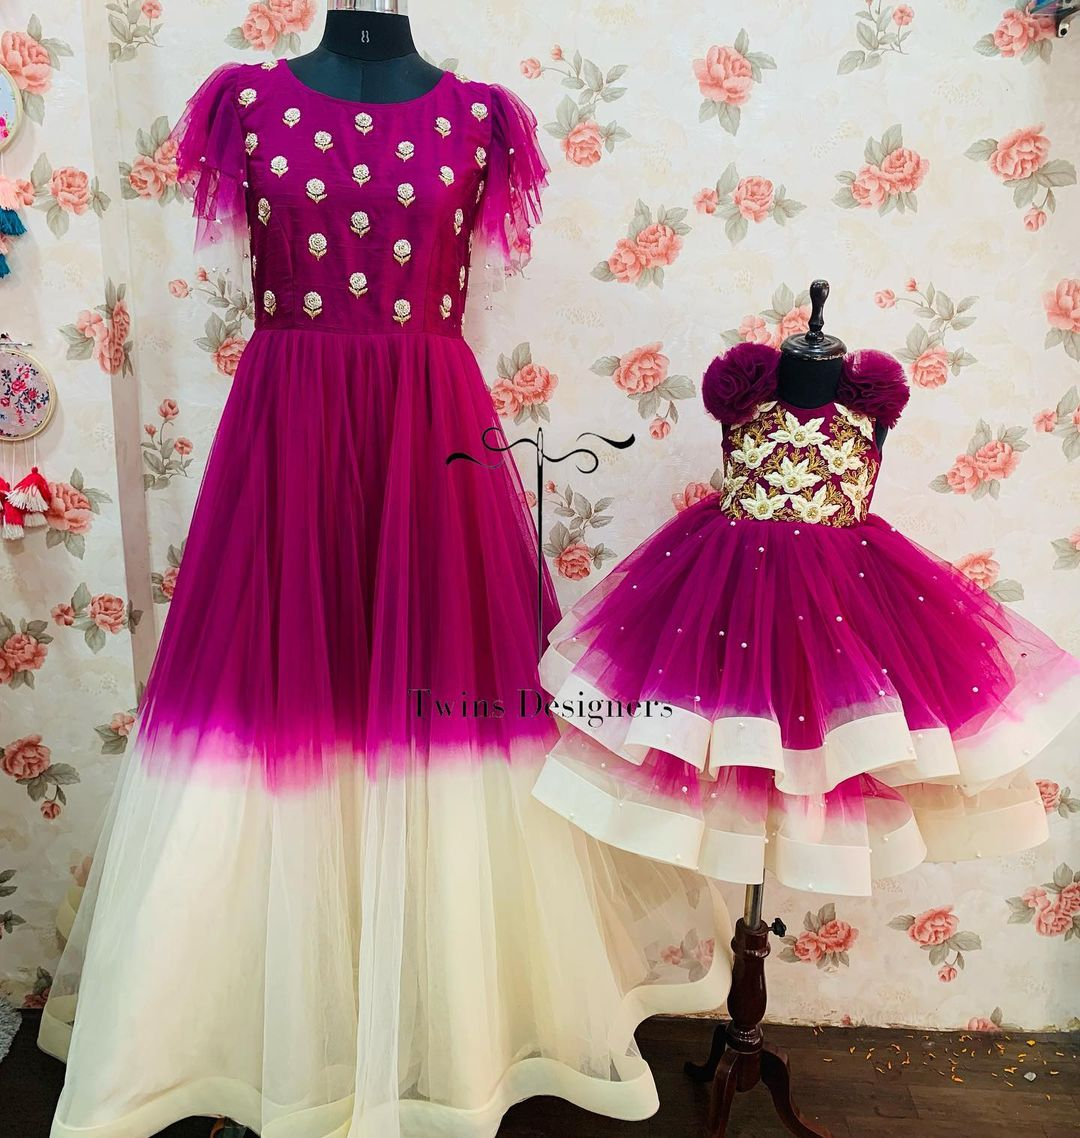 Beautiful purple and white color combo mom and daughter outfit. 2021-09-23